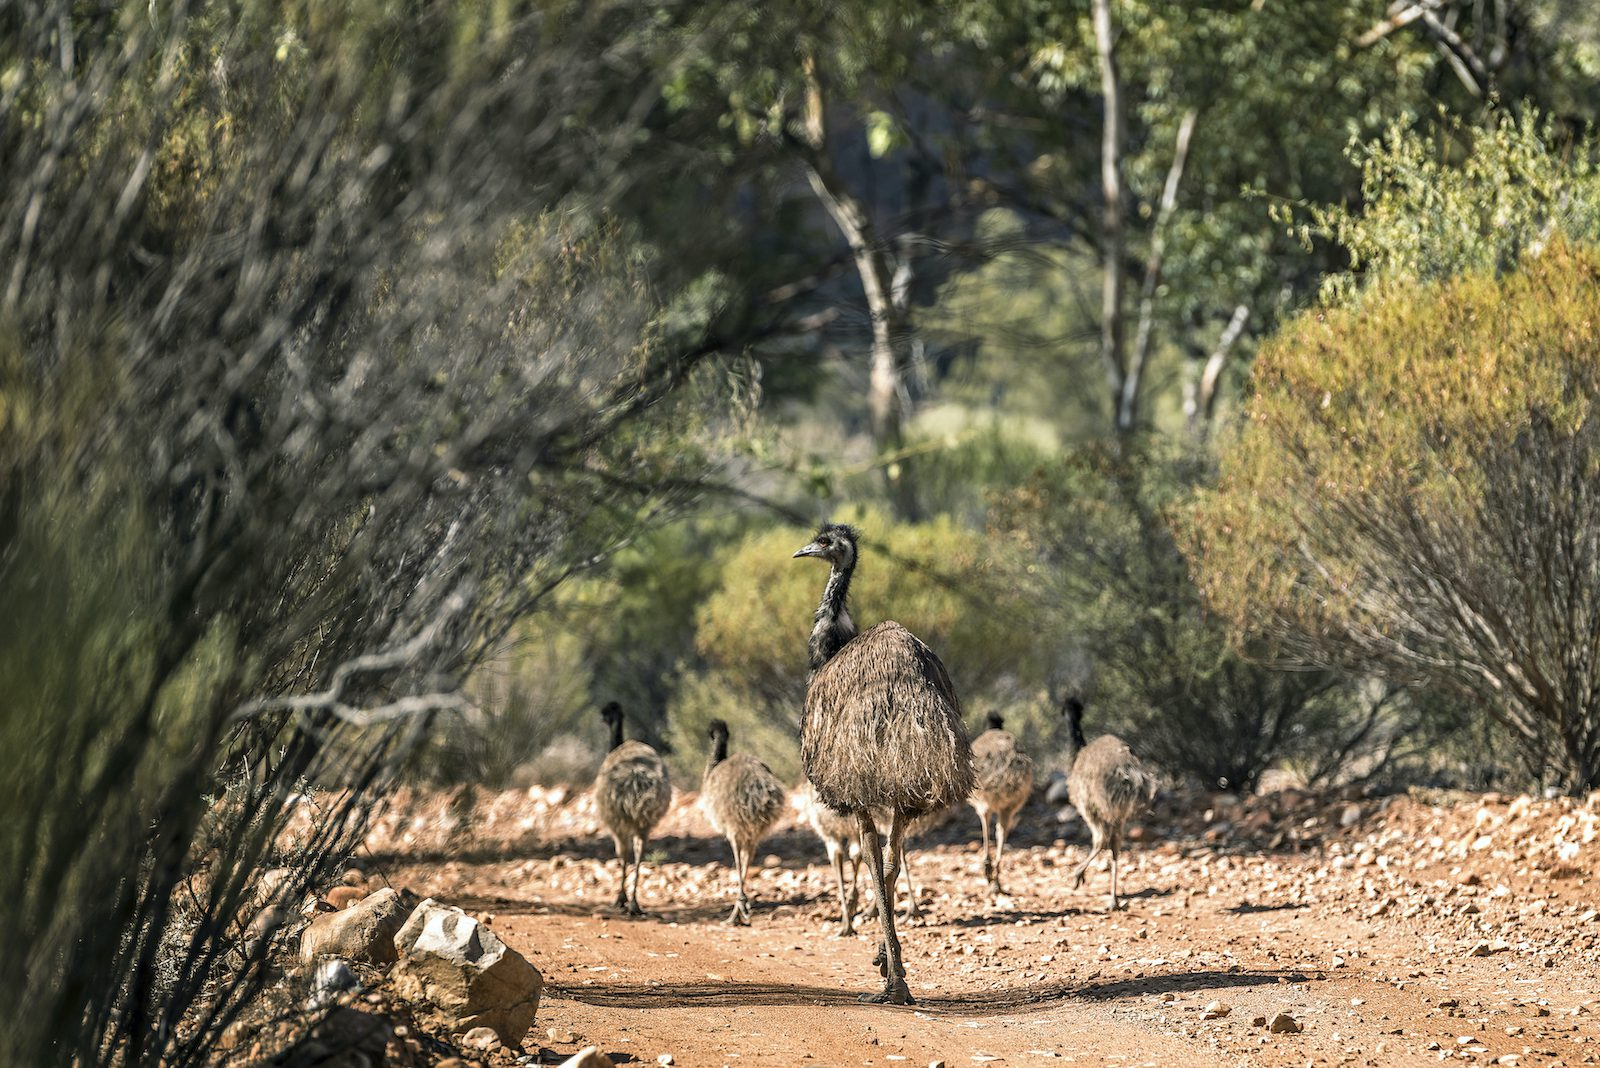 The work of the rangers caring for the Nantawarrina Indigenous Protected Area supports a variety of iconic Australian animals. Credit Annette Ruzika and Country Needs People.